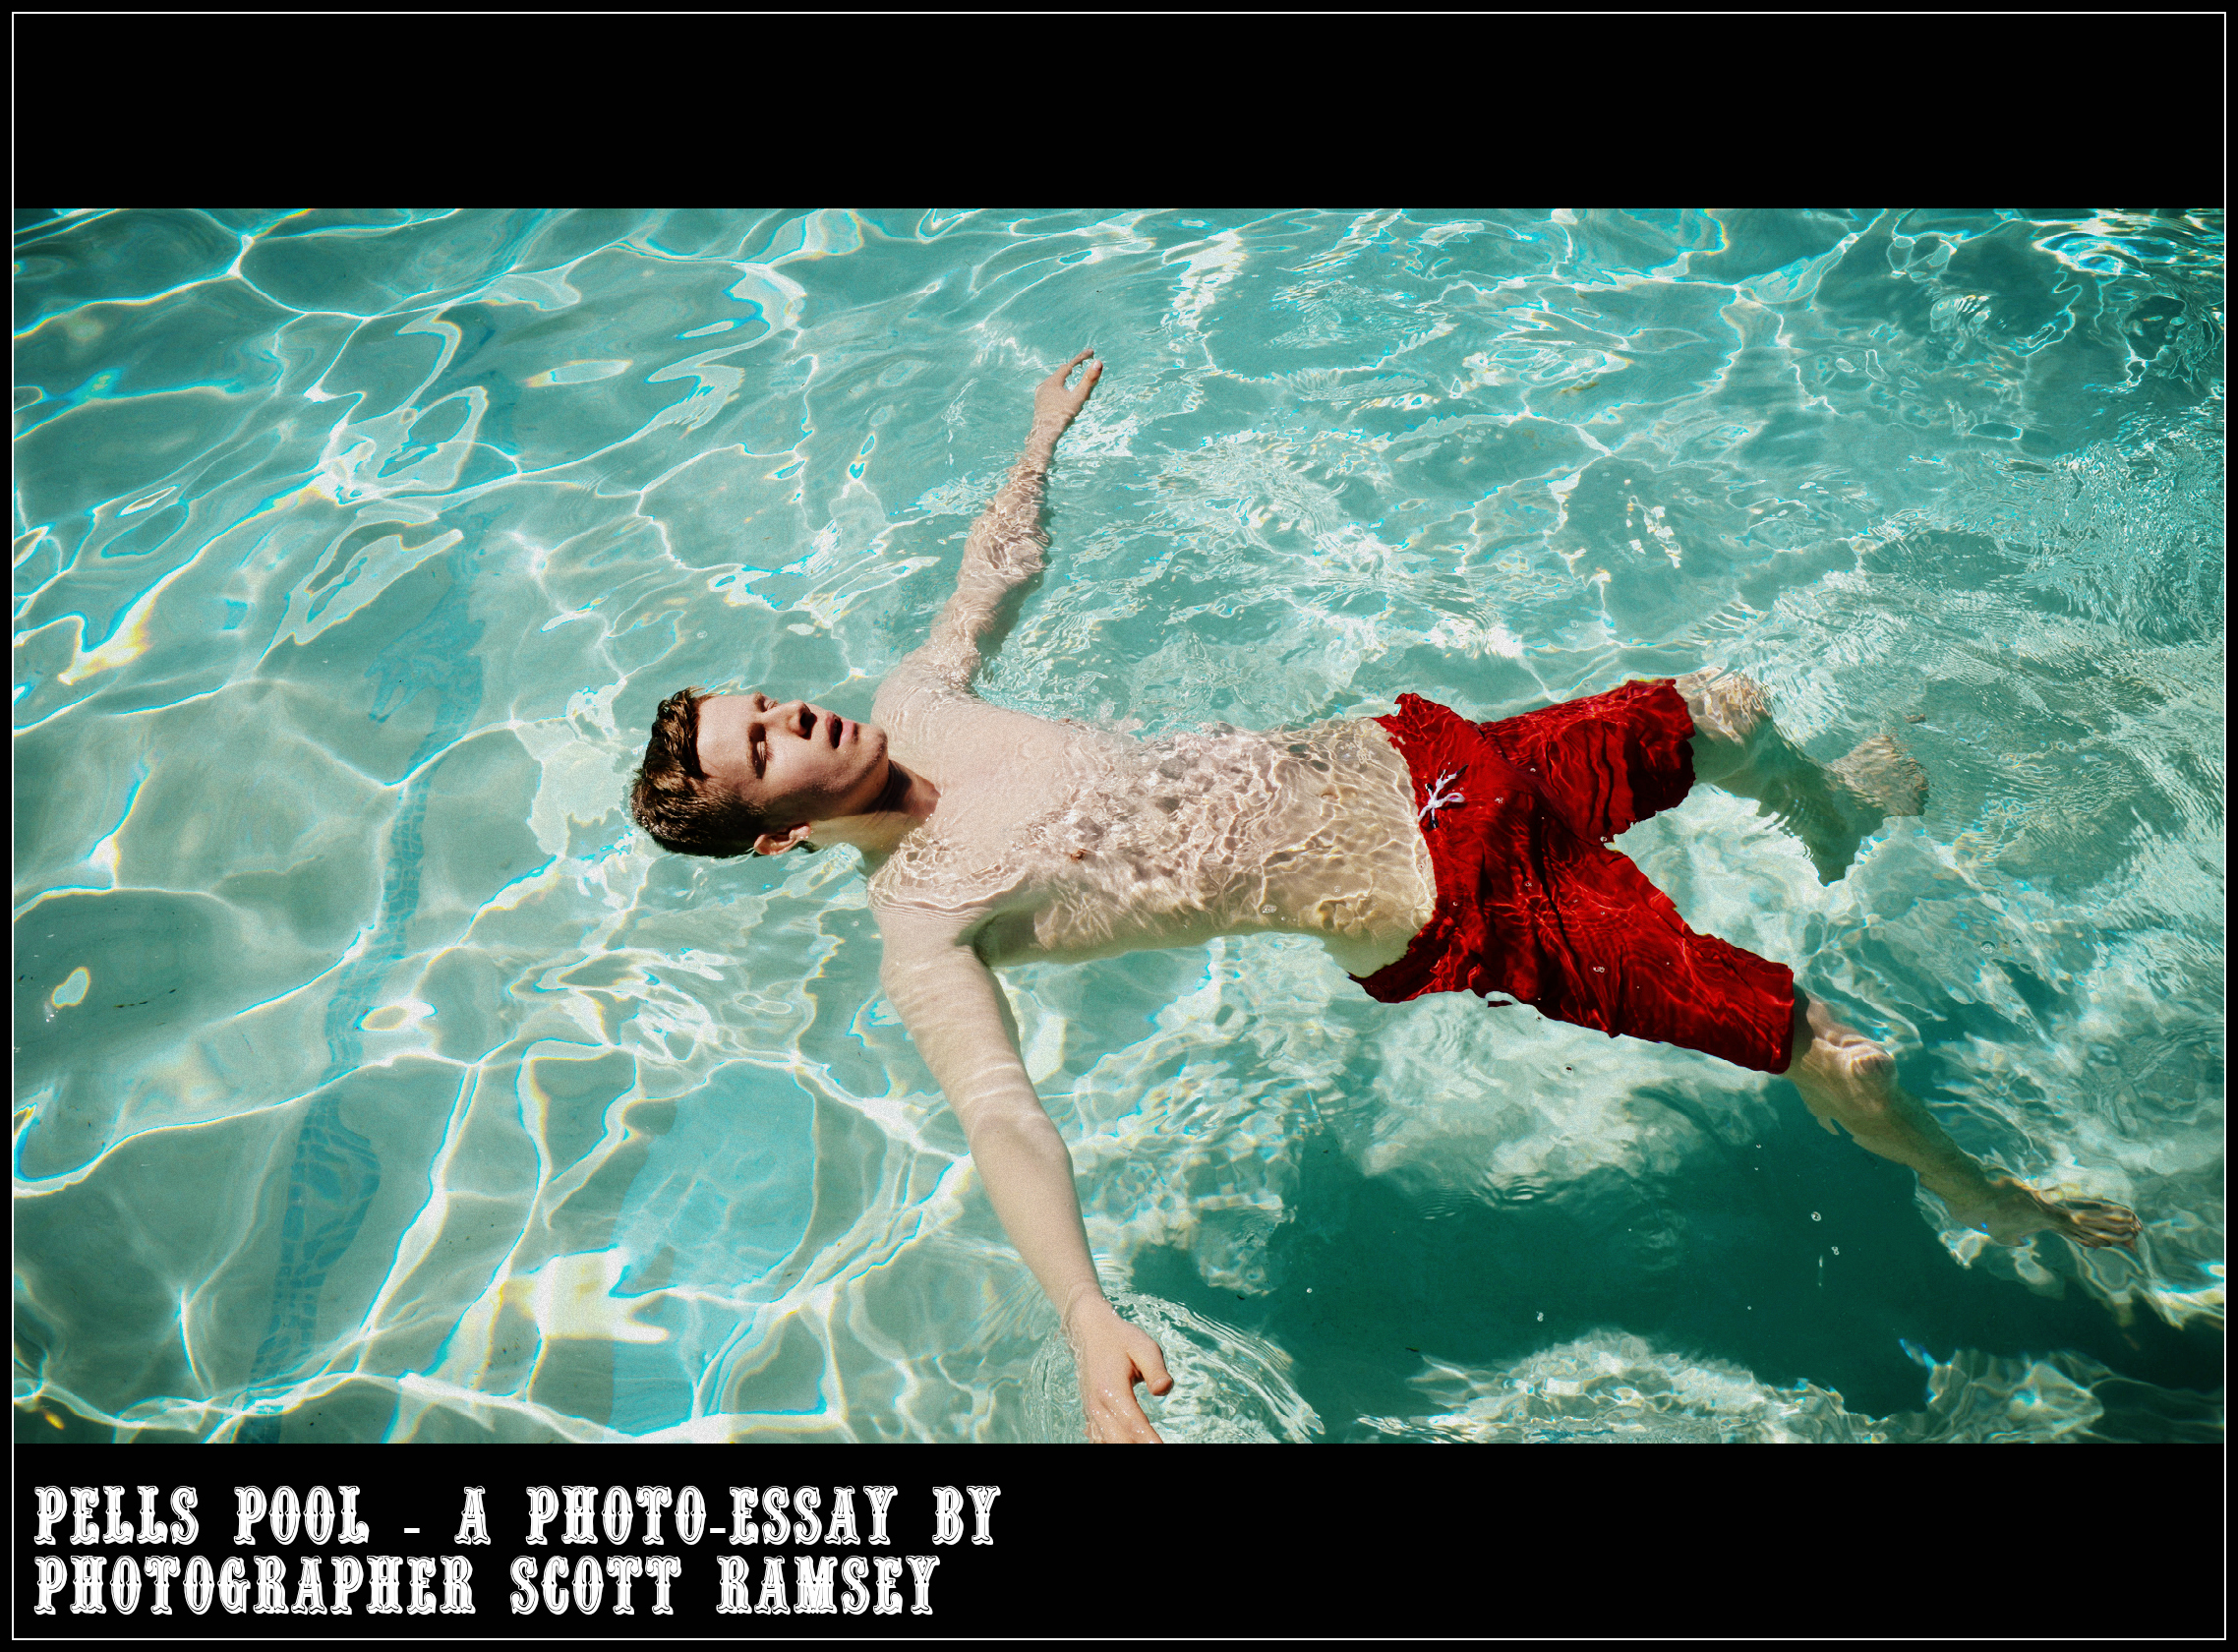 A new photo-essay by photographer Scott Ramsey - Pells Pool.